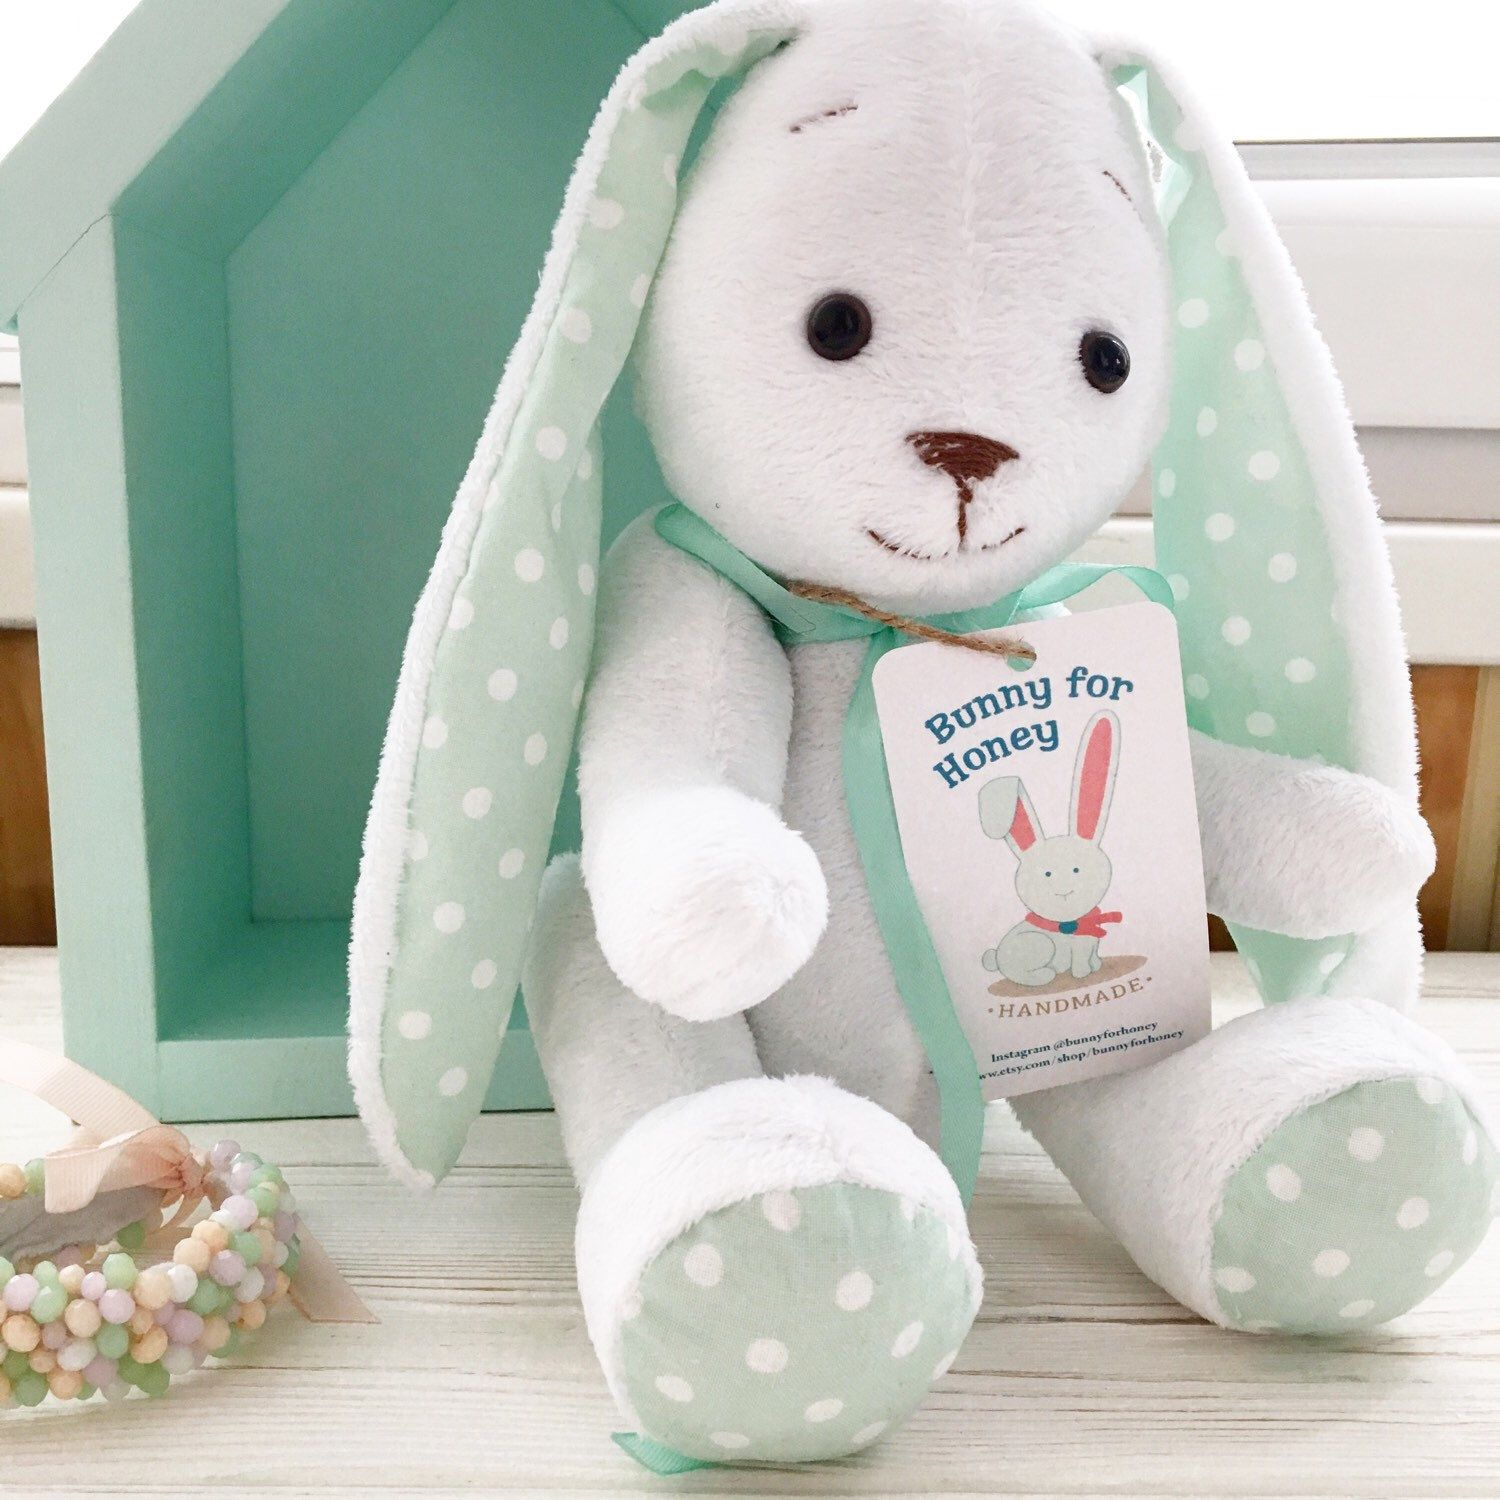 Etsy Bunny Rabbit Mint White Baby Gift Cool Gifts For Kids Gender Neutral Gift Birthday Gifts For Kids